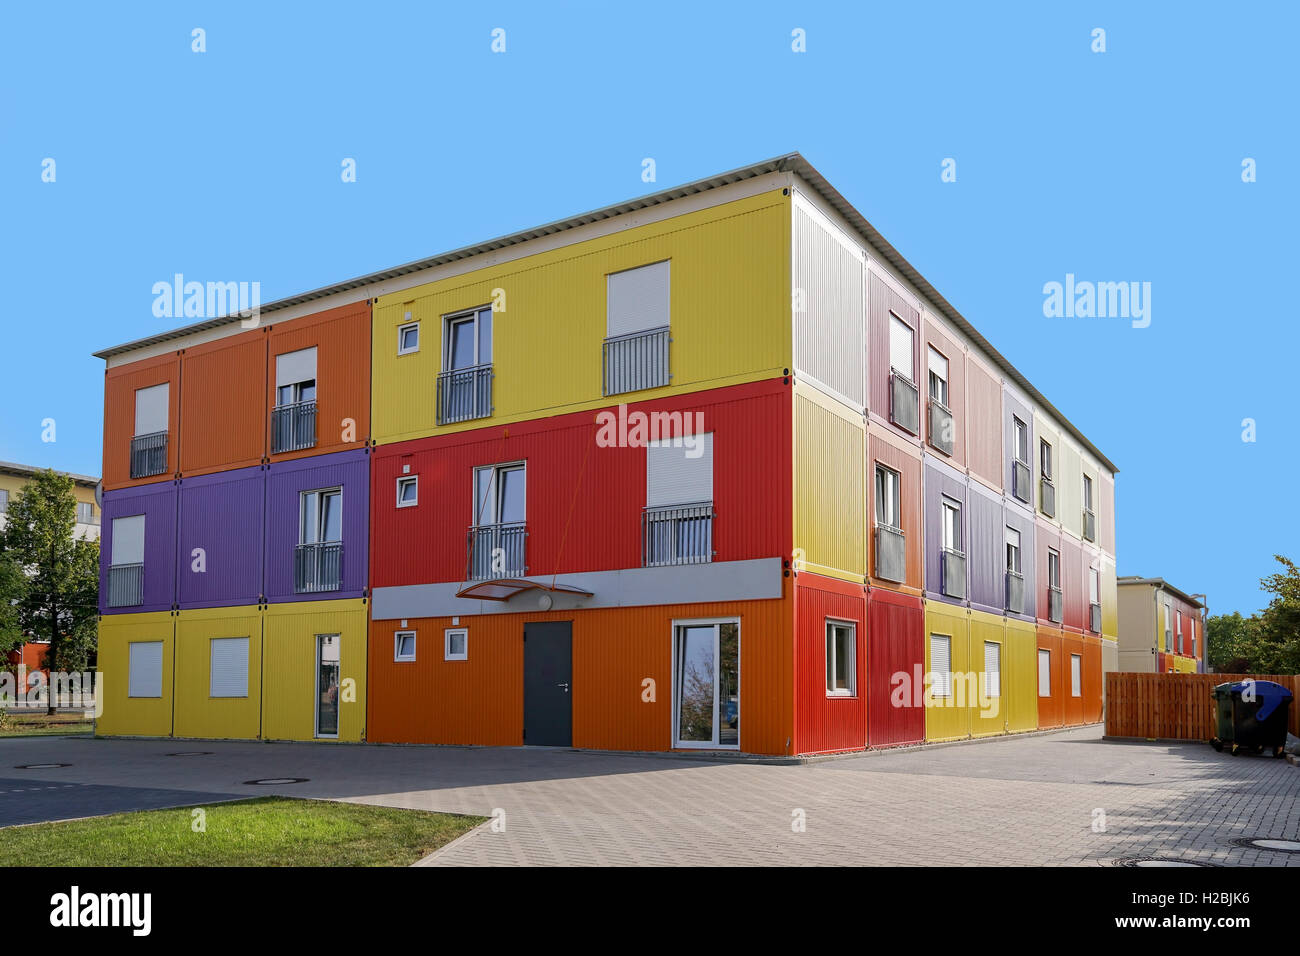 refugee hostel or accommodation - Stock Image